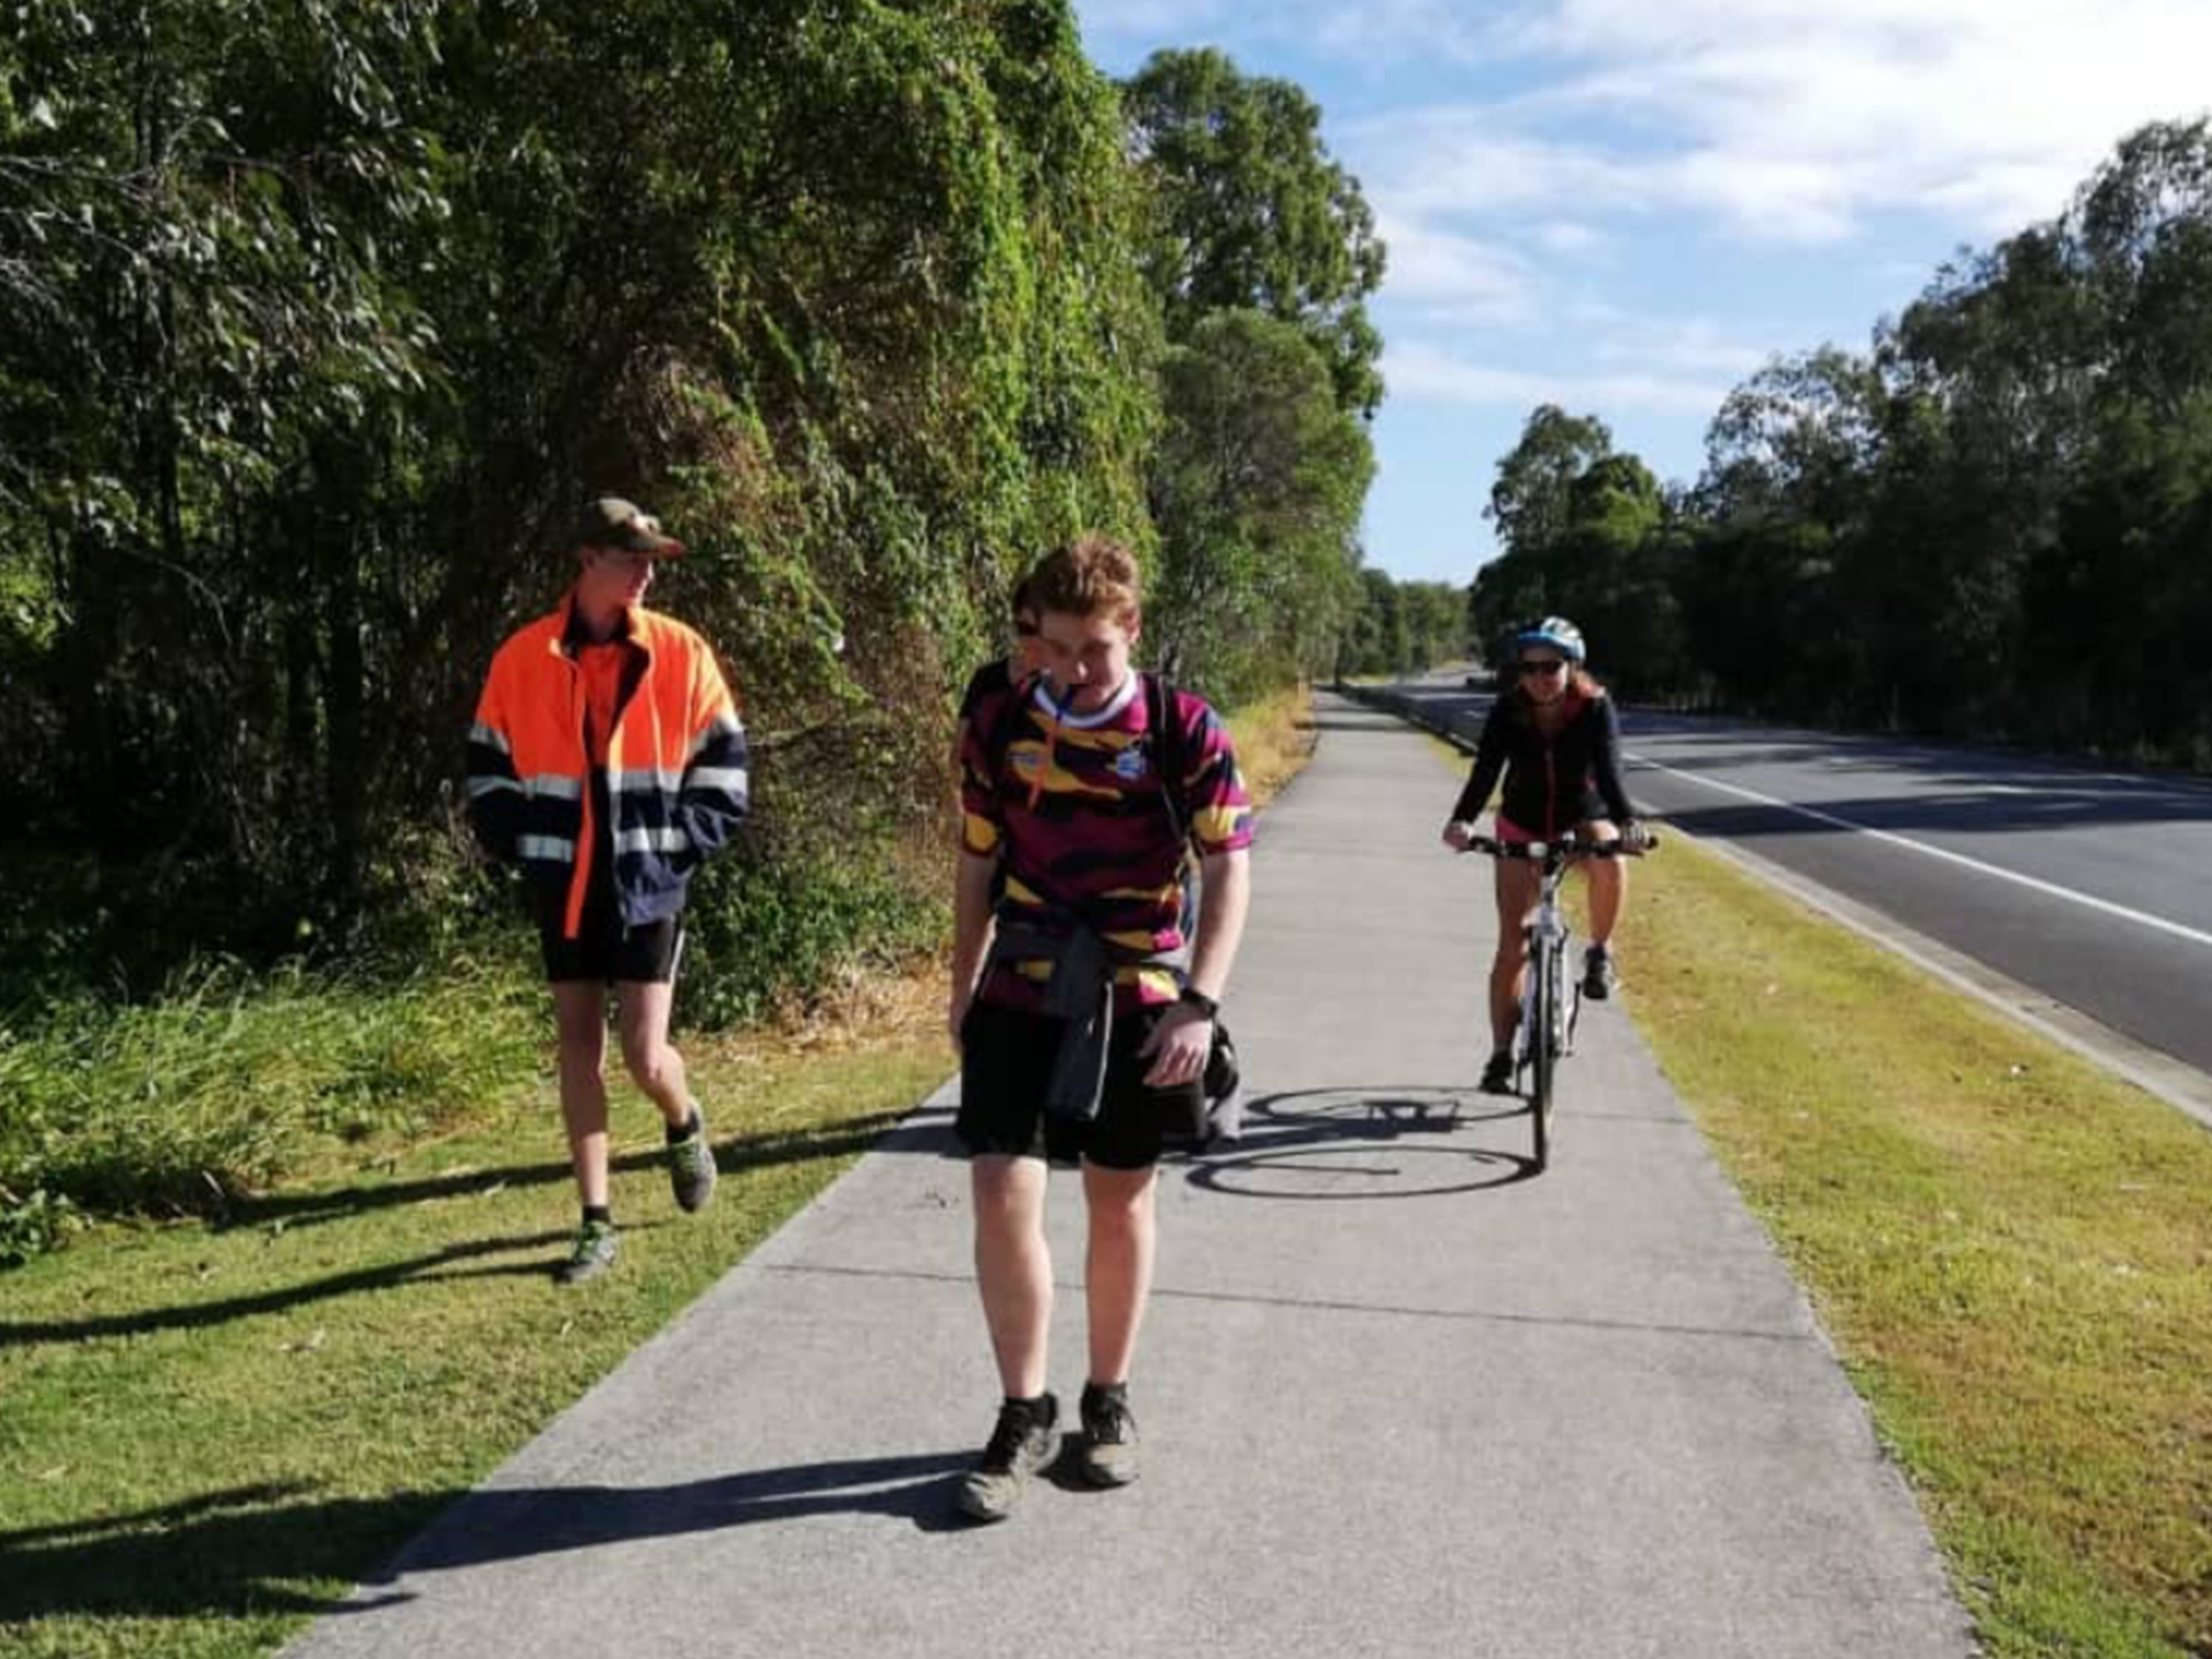 Sam Barham walking with his friend and teacher on a bike during the Kokoda Virtual Challenge